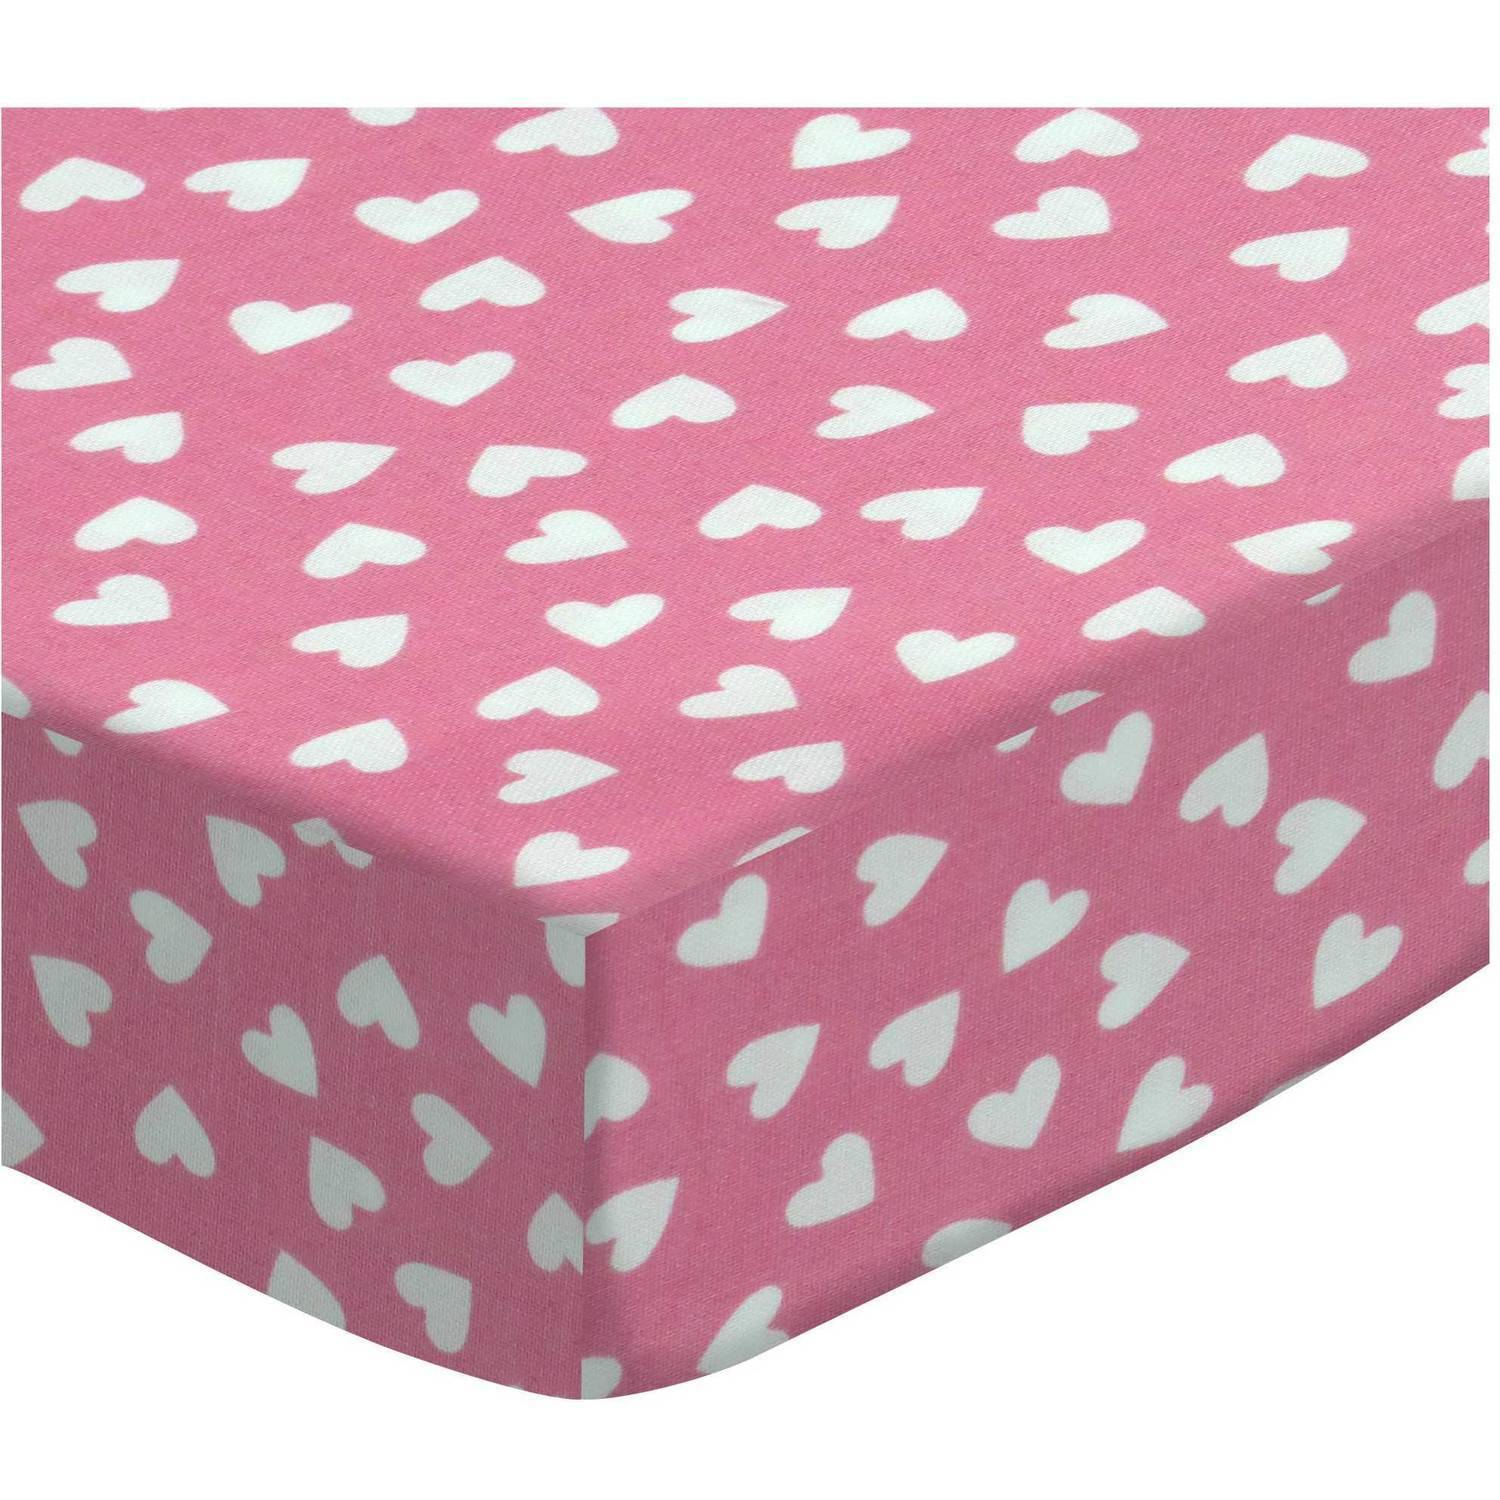 SheetWorld Fitted Portable / Mini Crib Sheet - Primary Hearts White On Pink Woven